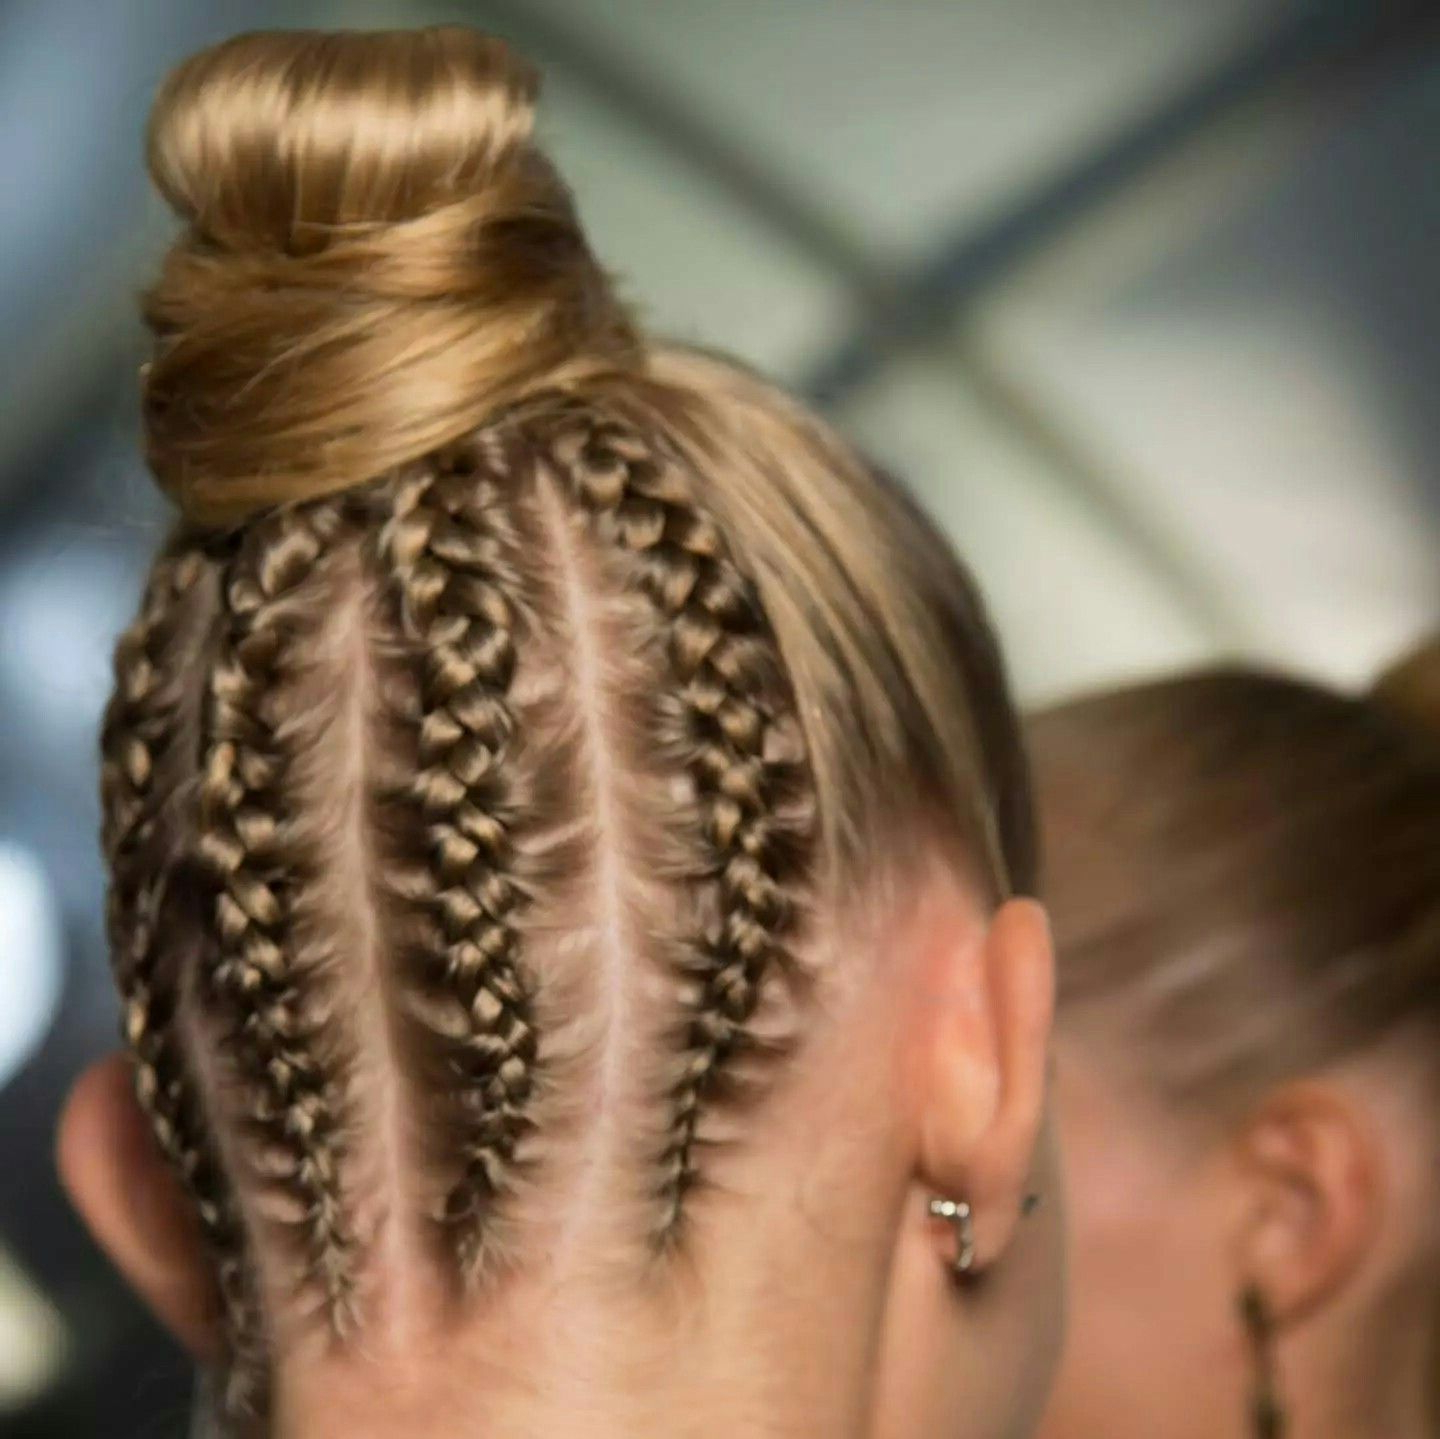 2020 Braided Underside Hairstyles For If You're Going To Put You're Hair In A Bun This Season (View 14 of 20)